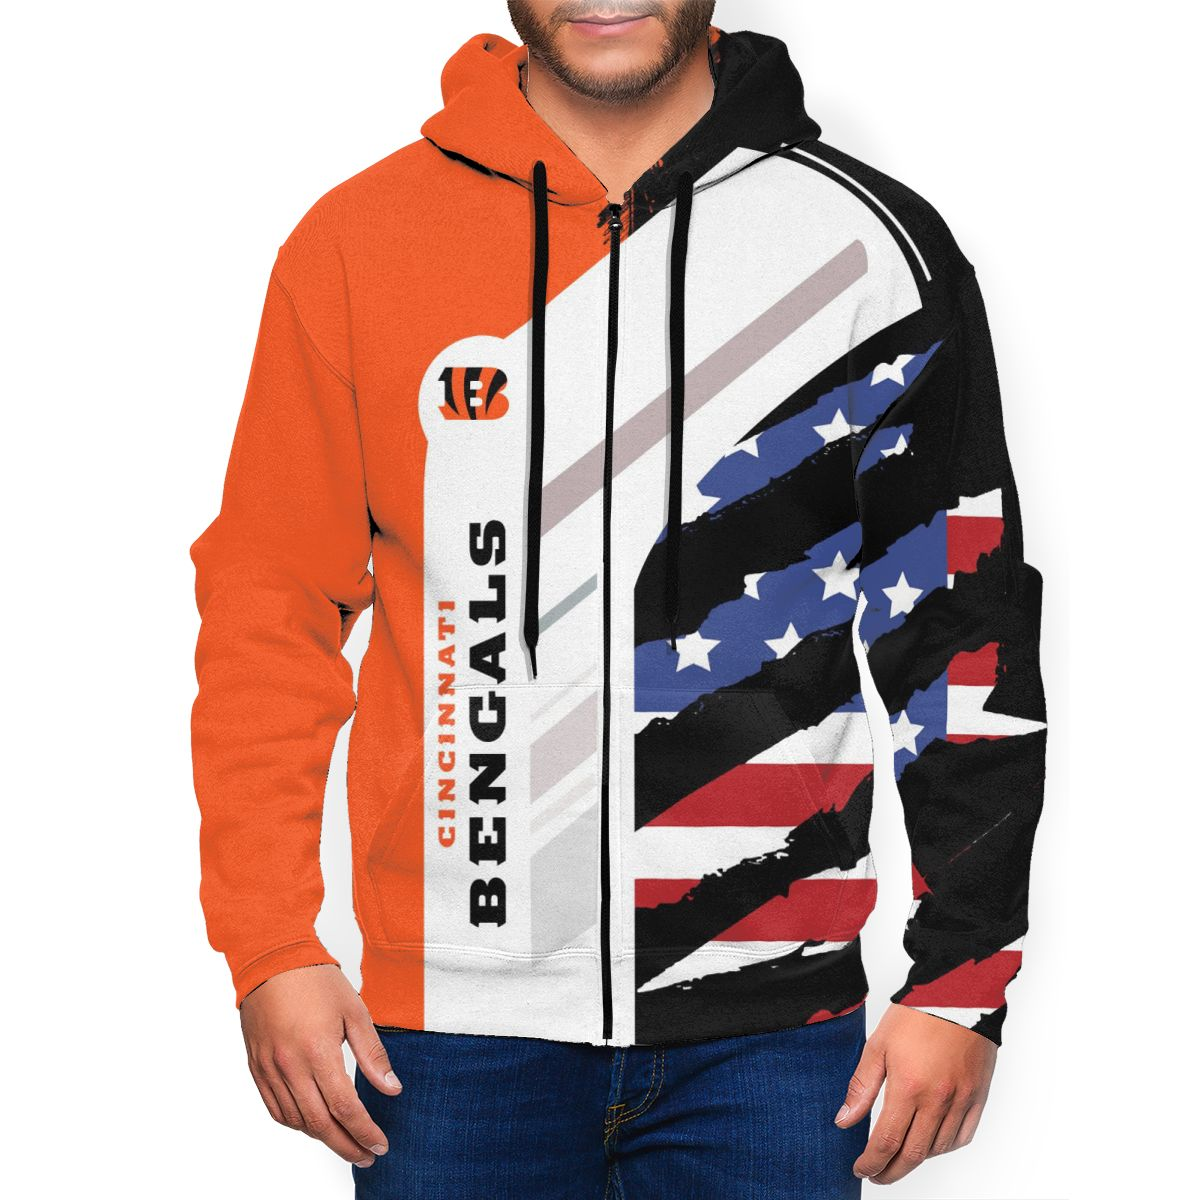 Bengals Men's Zip Hooded Sweatshirt